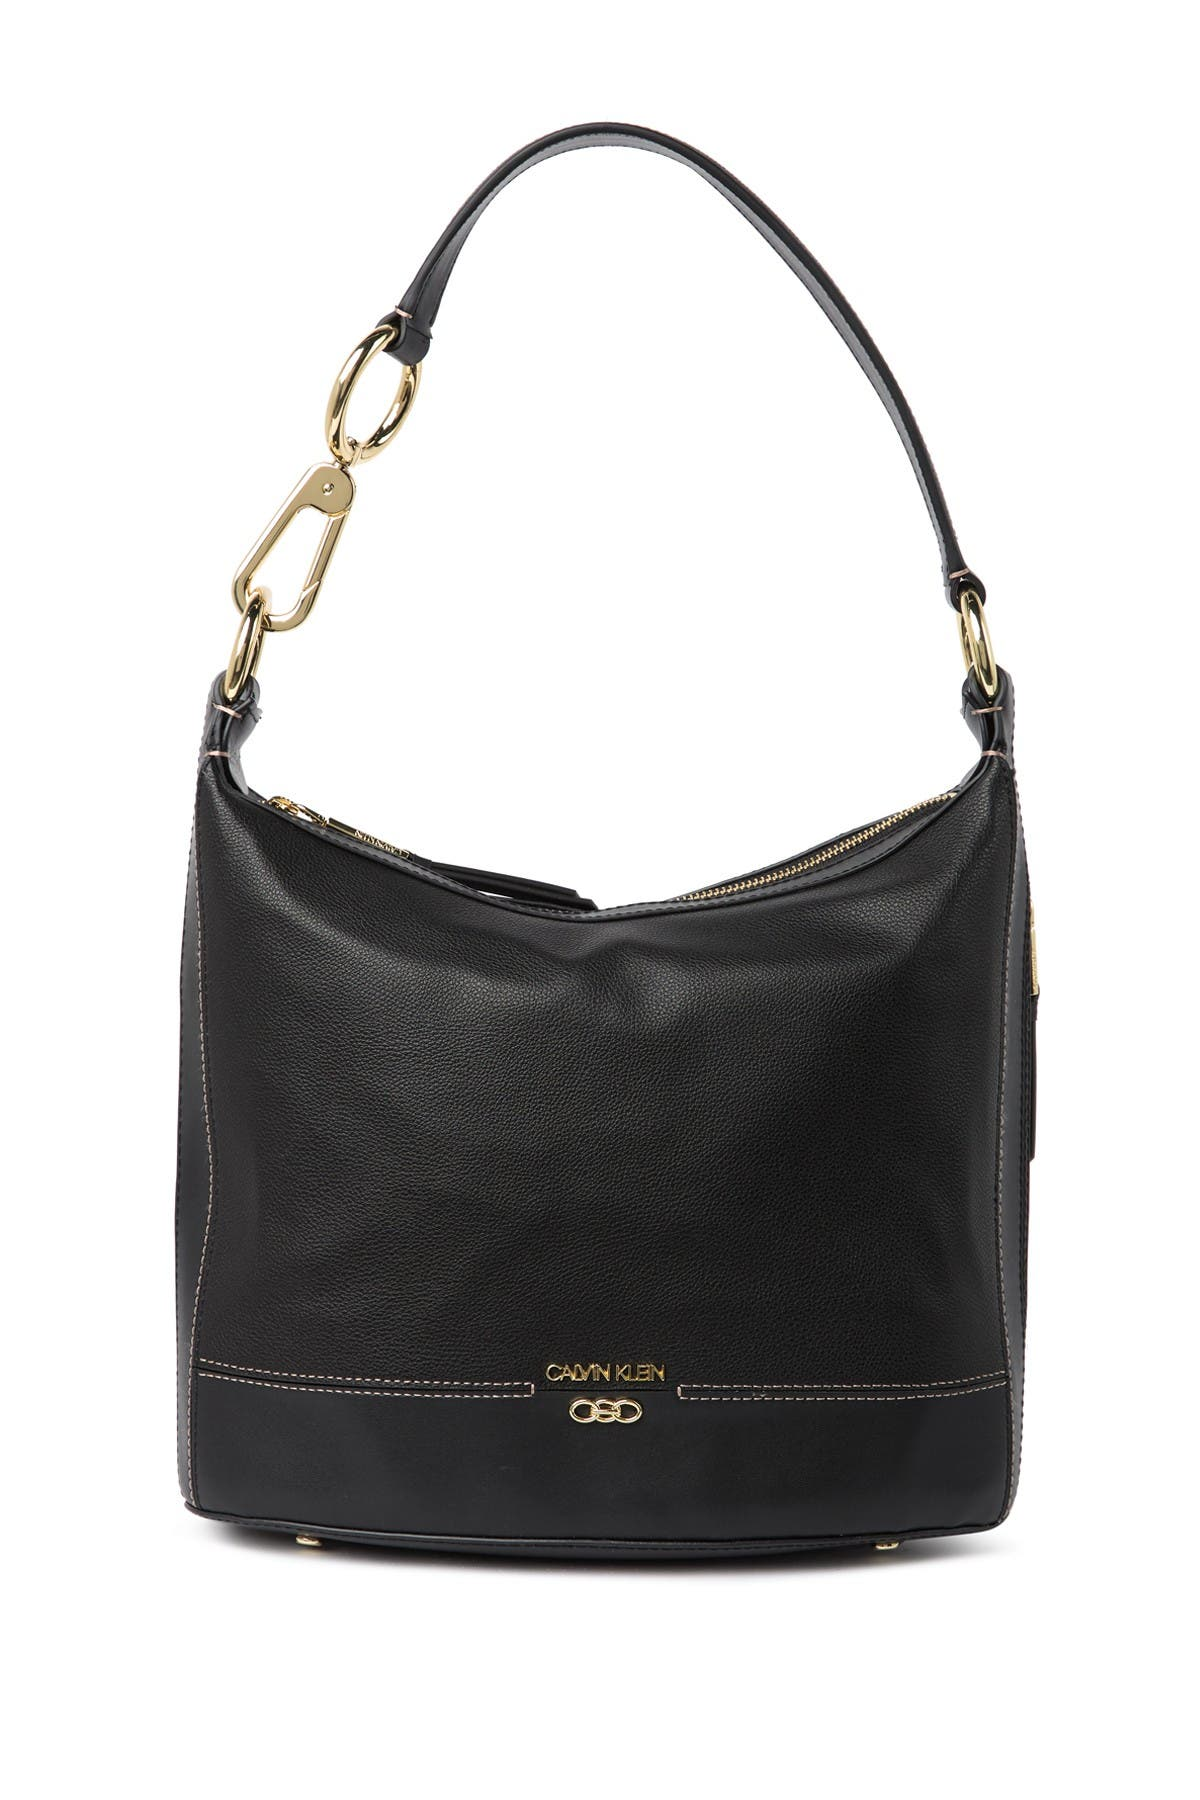 Image of Calvin Klein Sophia Micro Pebble Leather Hobo Shoulder Bag